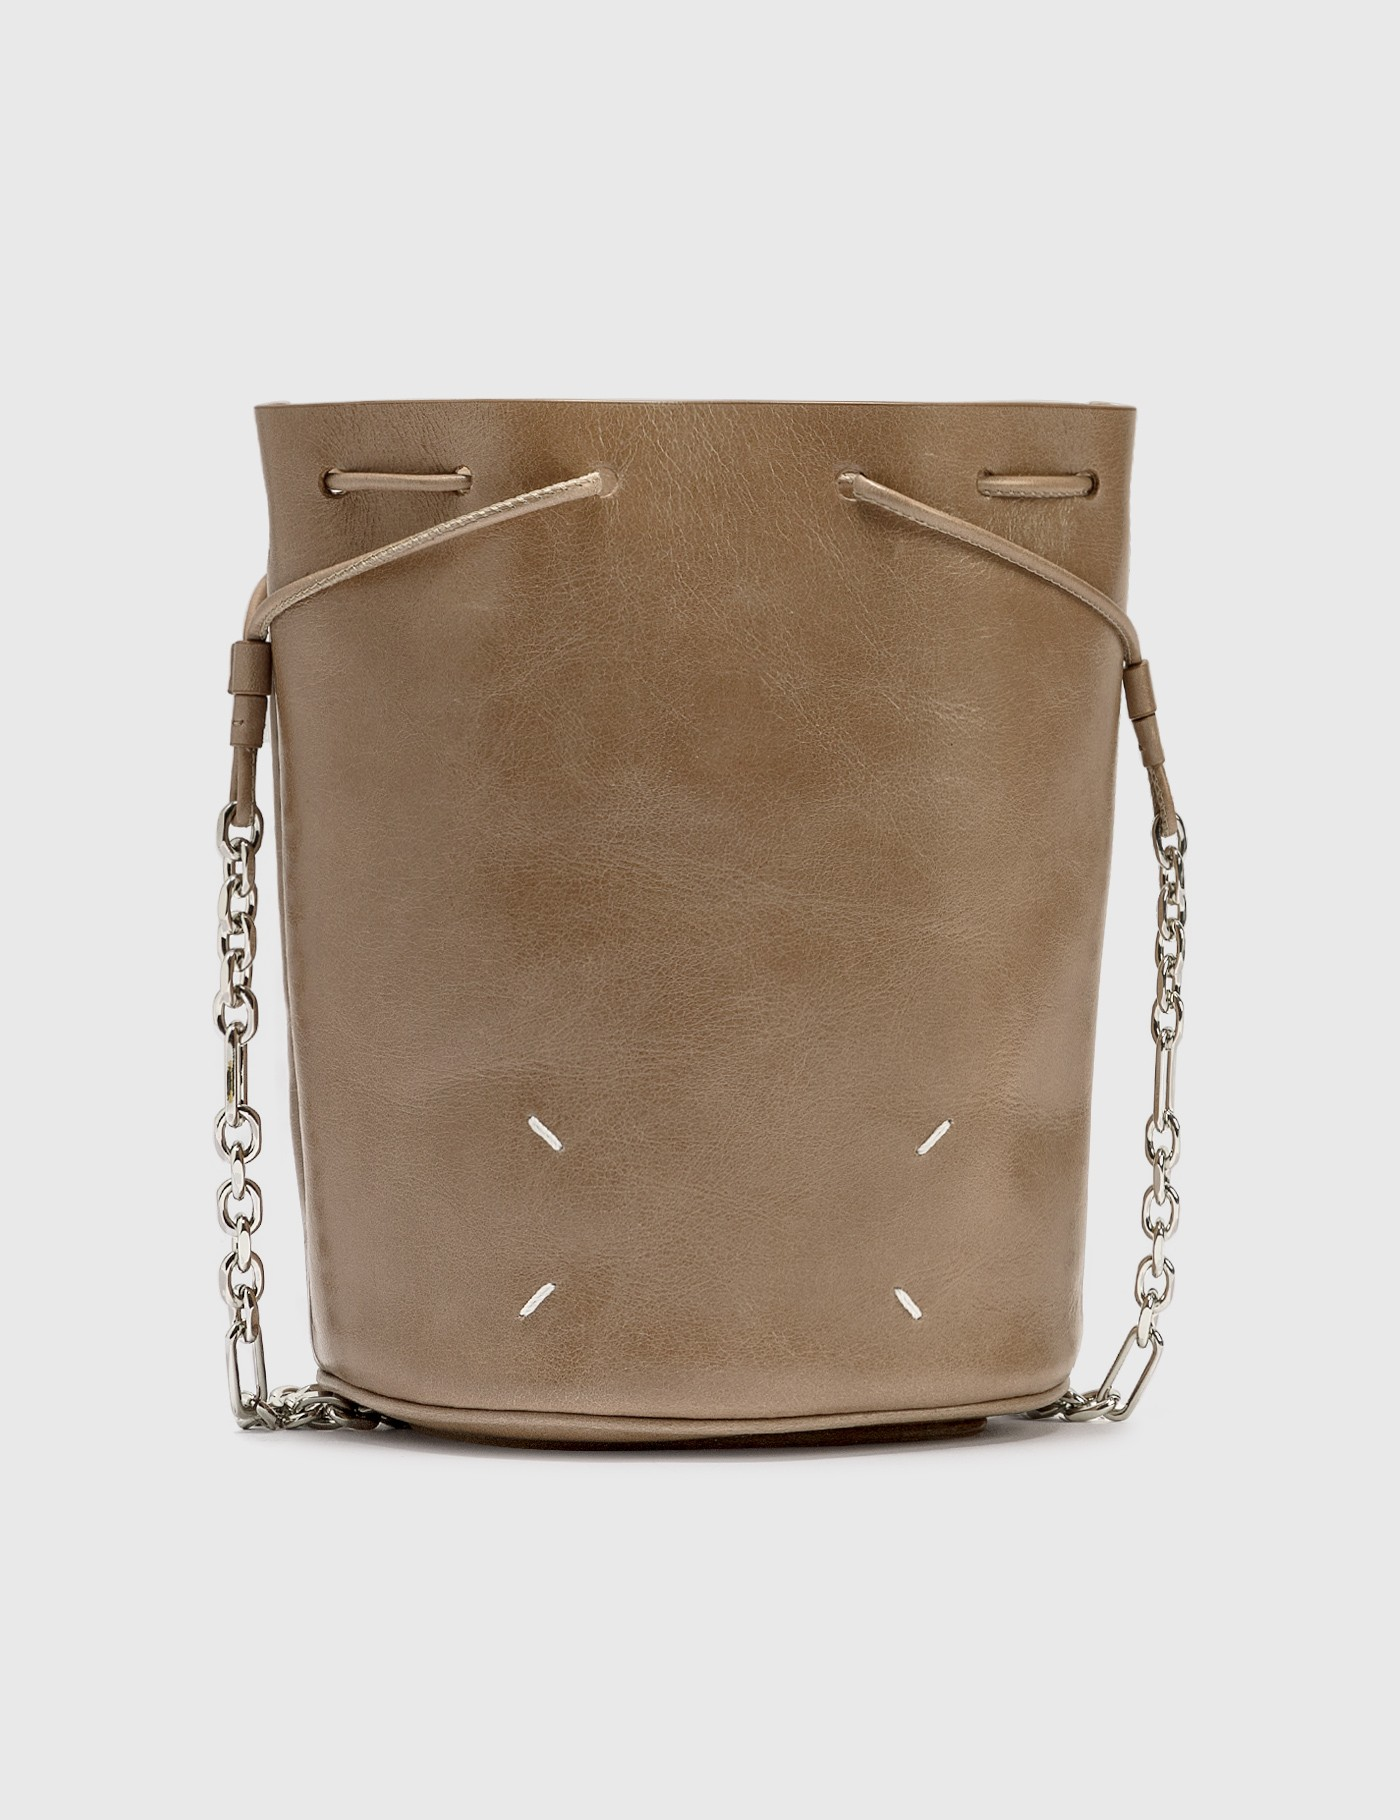 Maison Margiela TABI BUCKET BAG